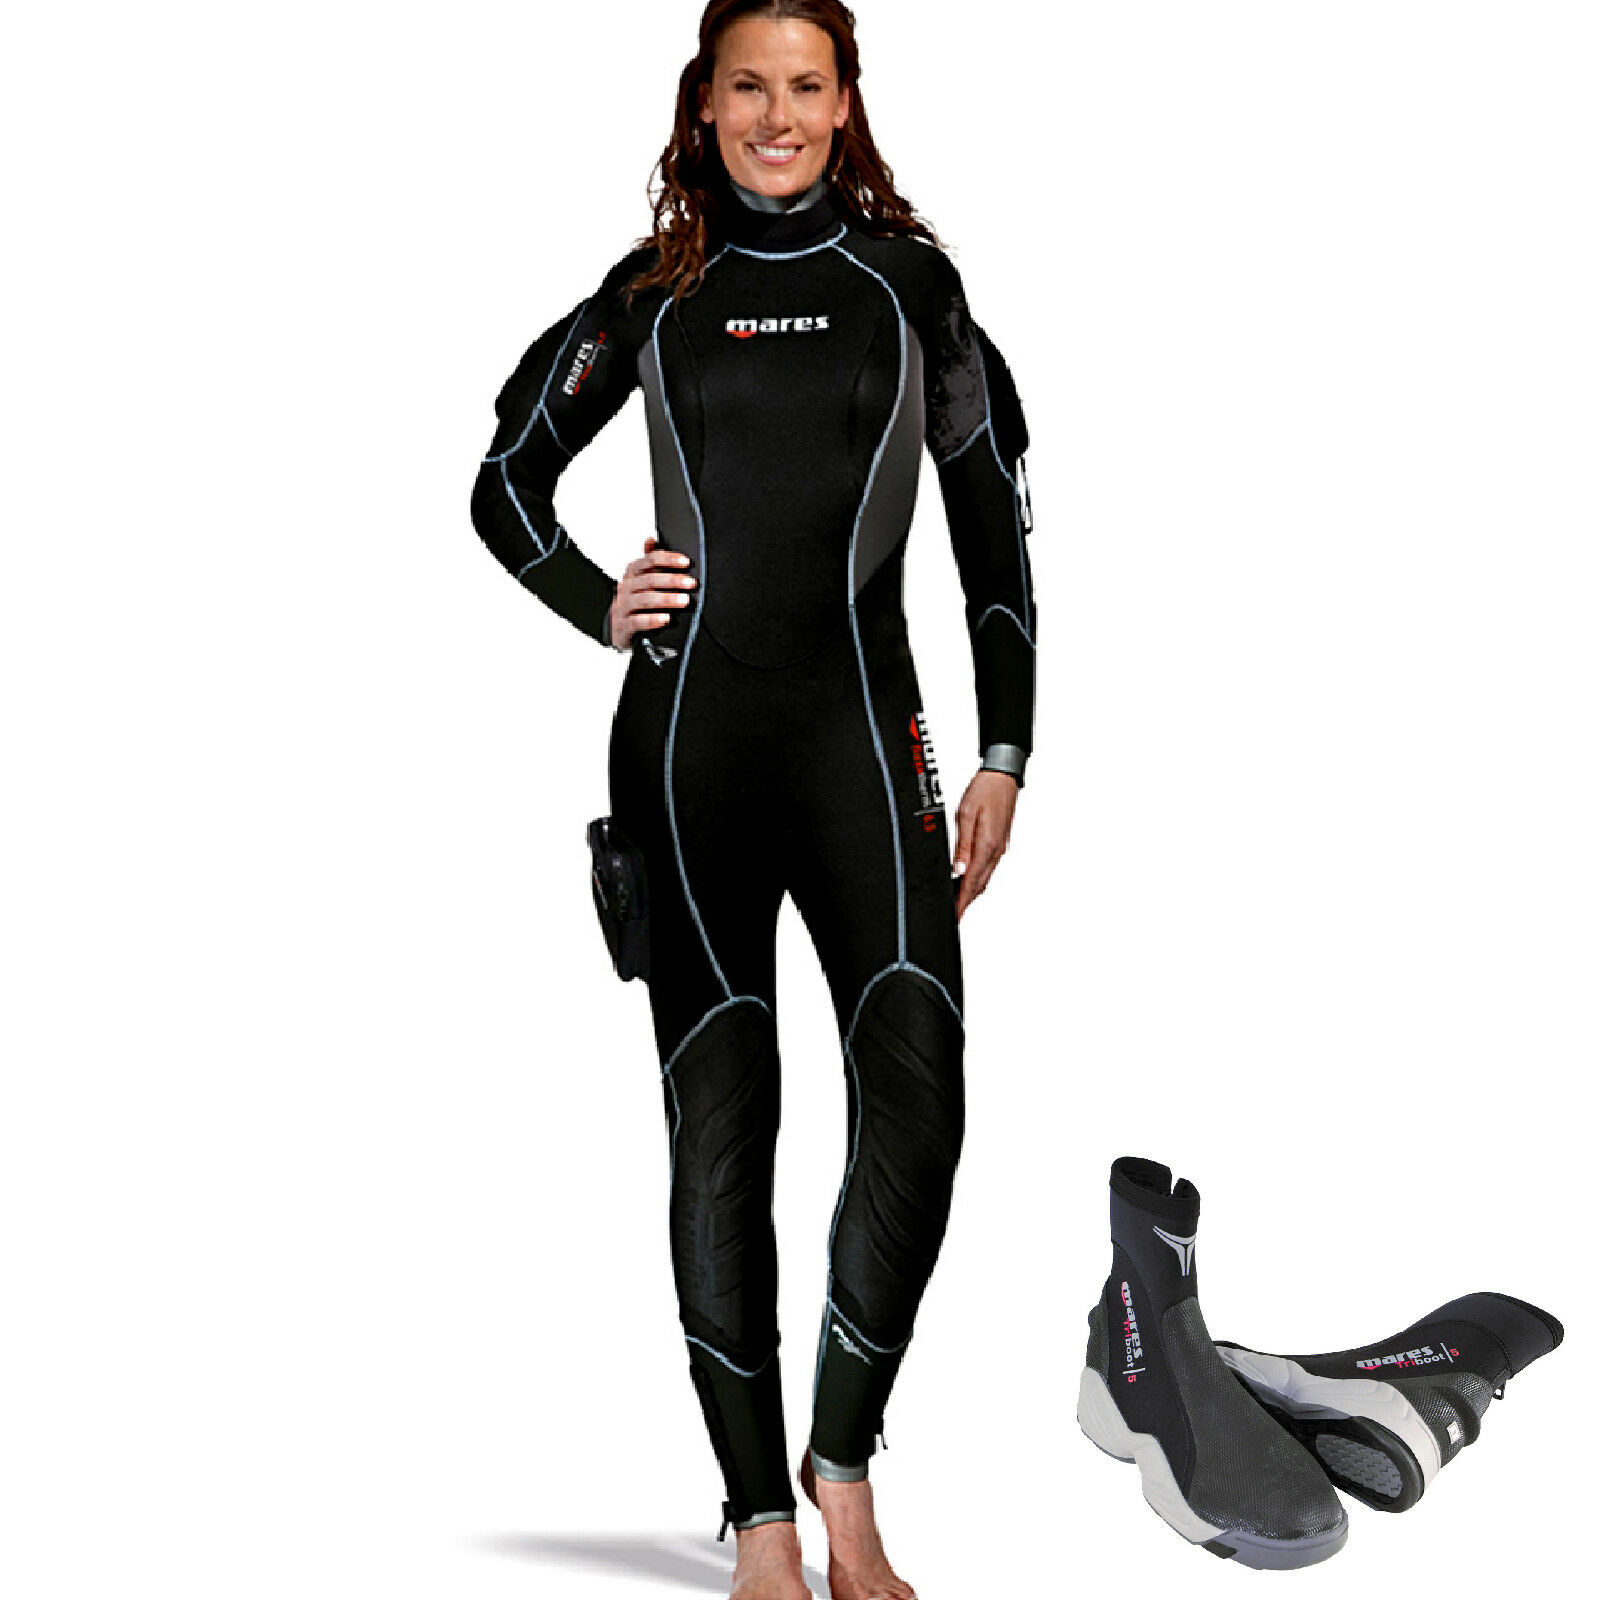 LO3 Mares semidry suit FLEXA THERM she 8,6,5 dives size 1 + boots 5mm trilastic